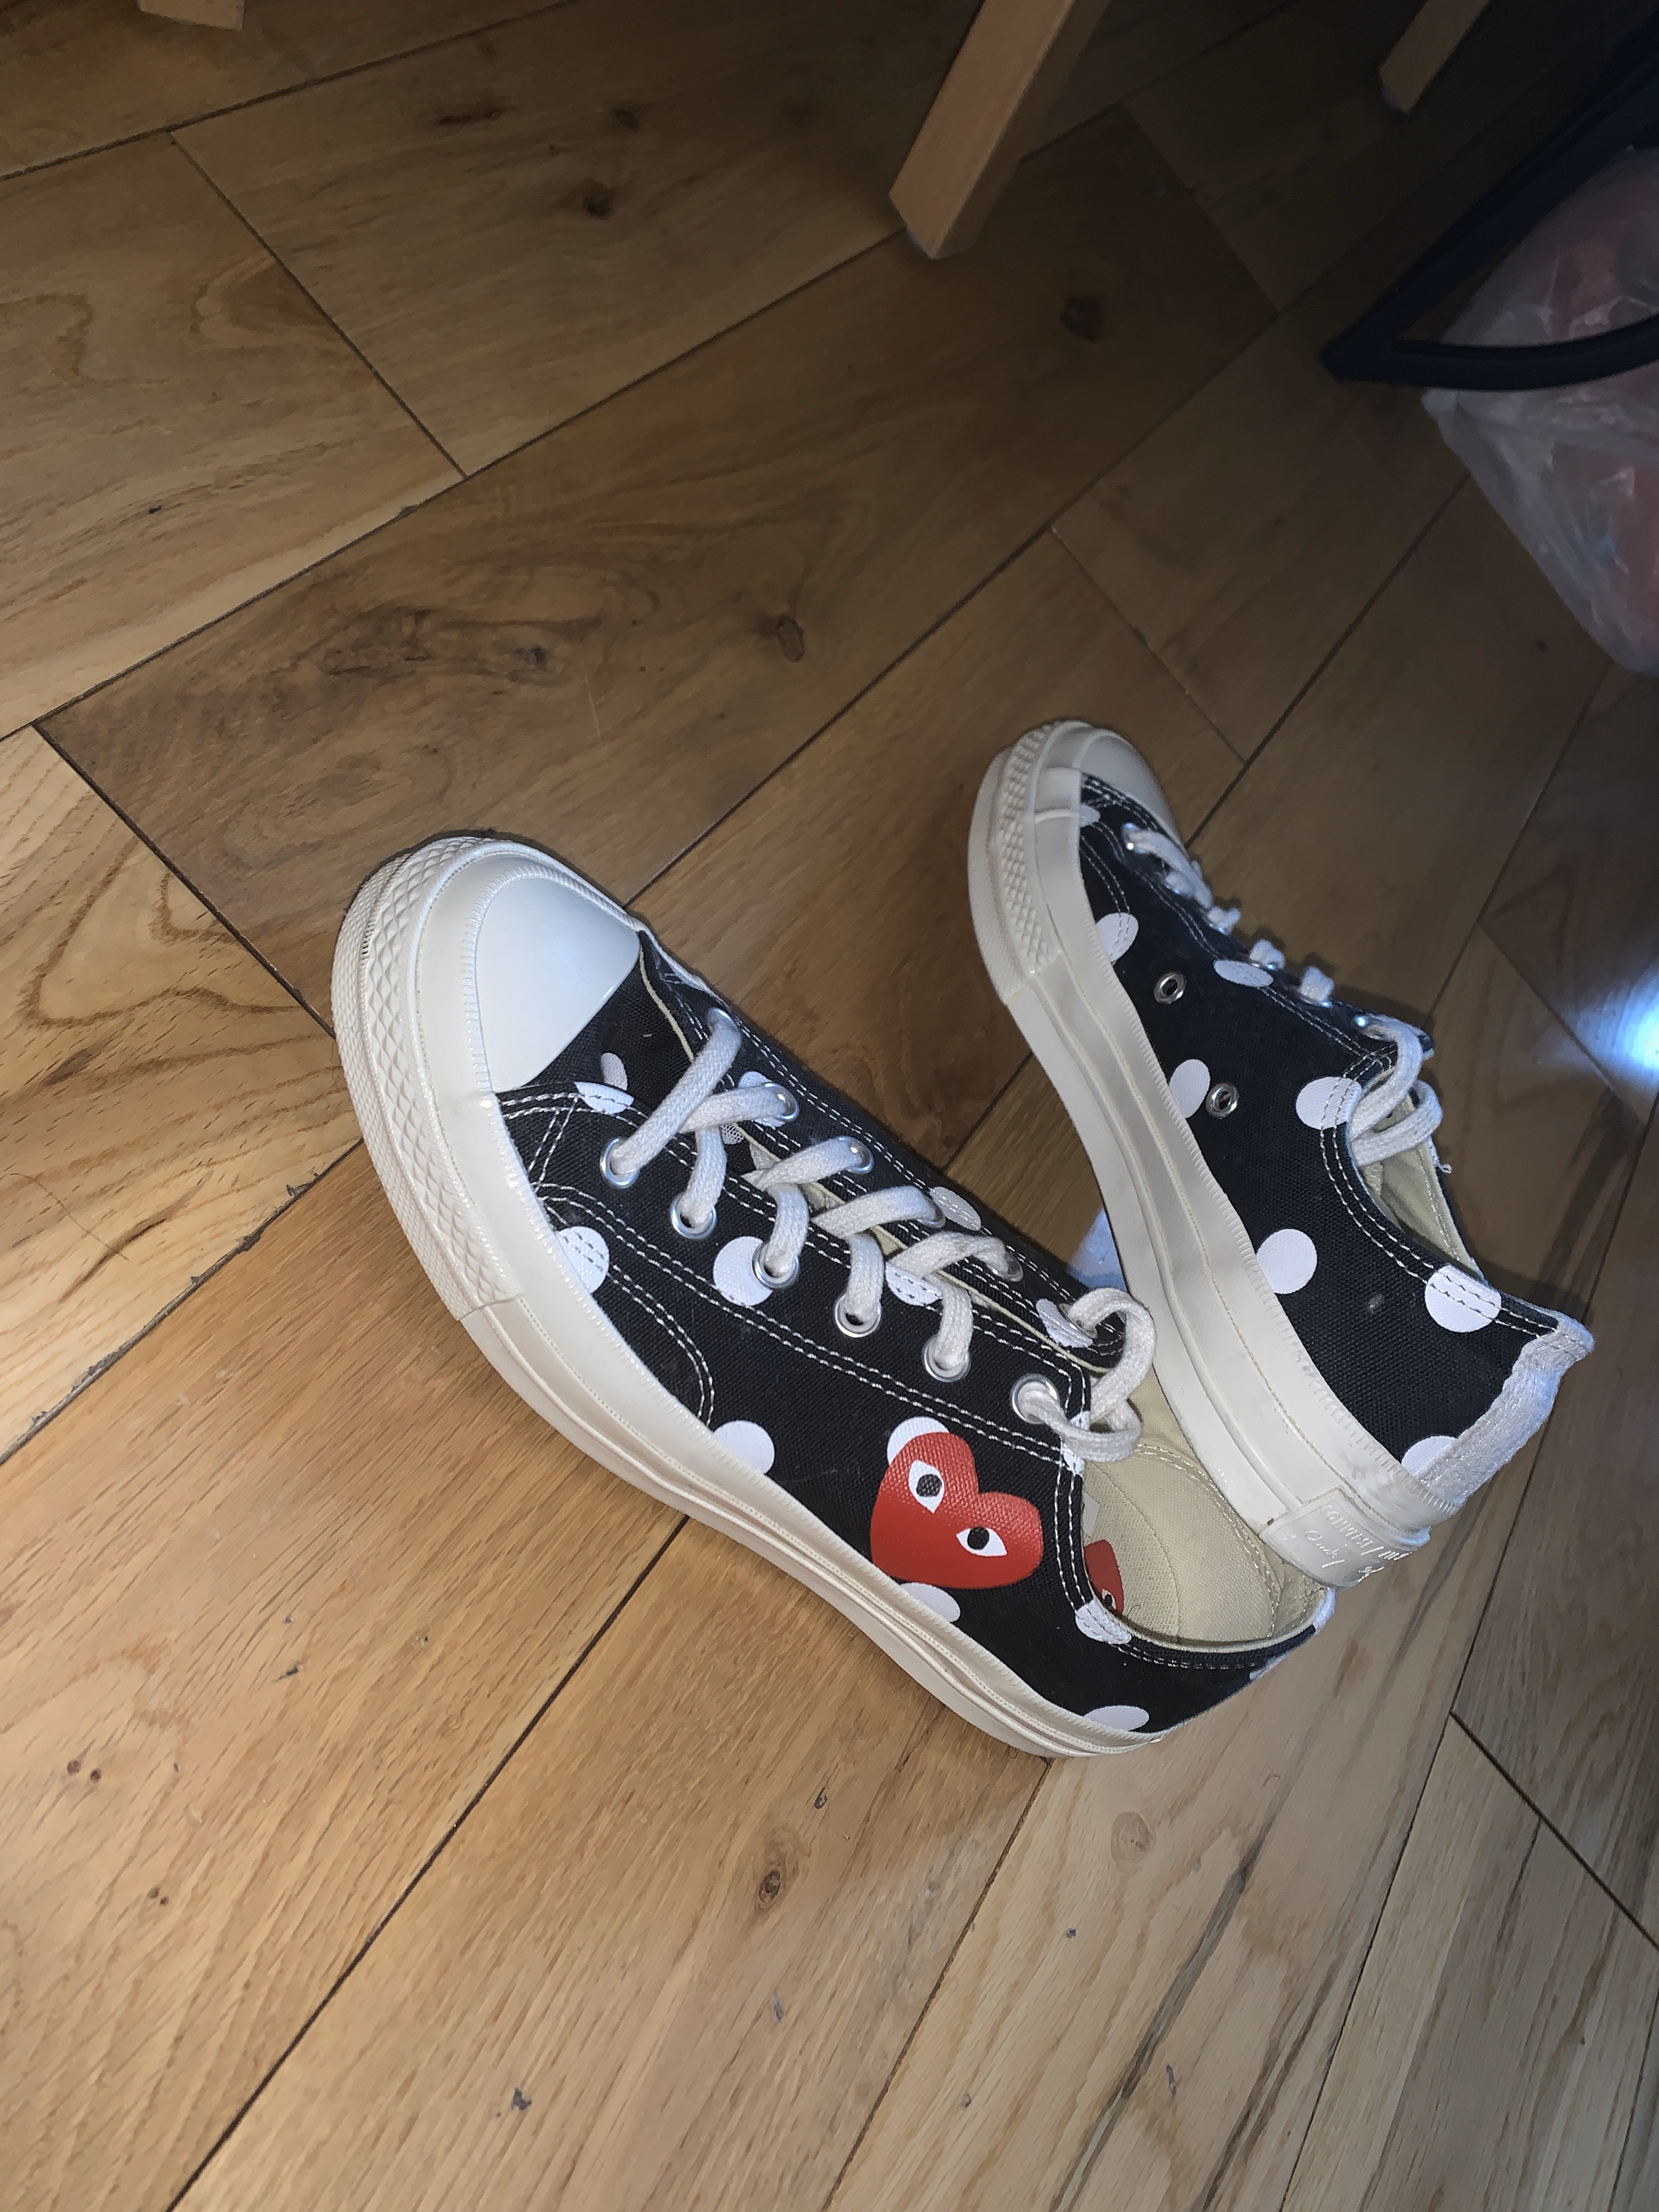 Converse - $160 - Size 9